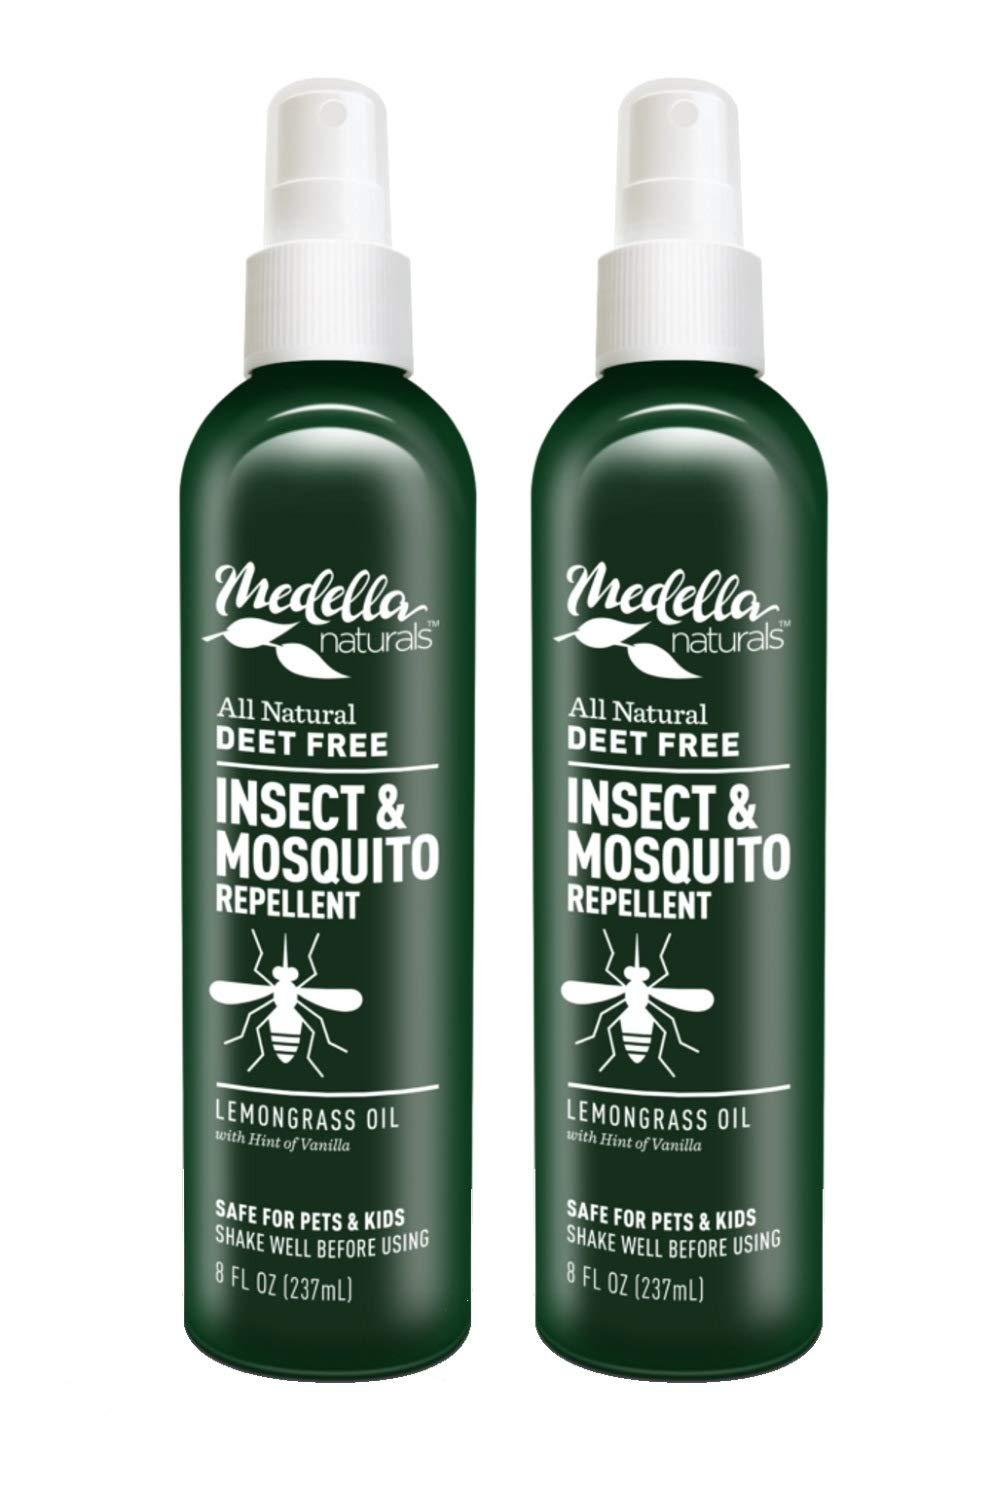 Medella Naturals All Natural Insect & Mosquito Repellent 8oz - 2 pack